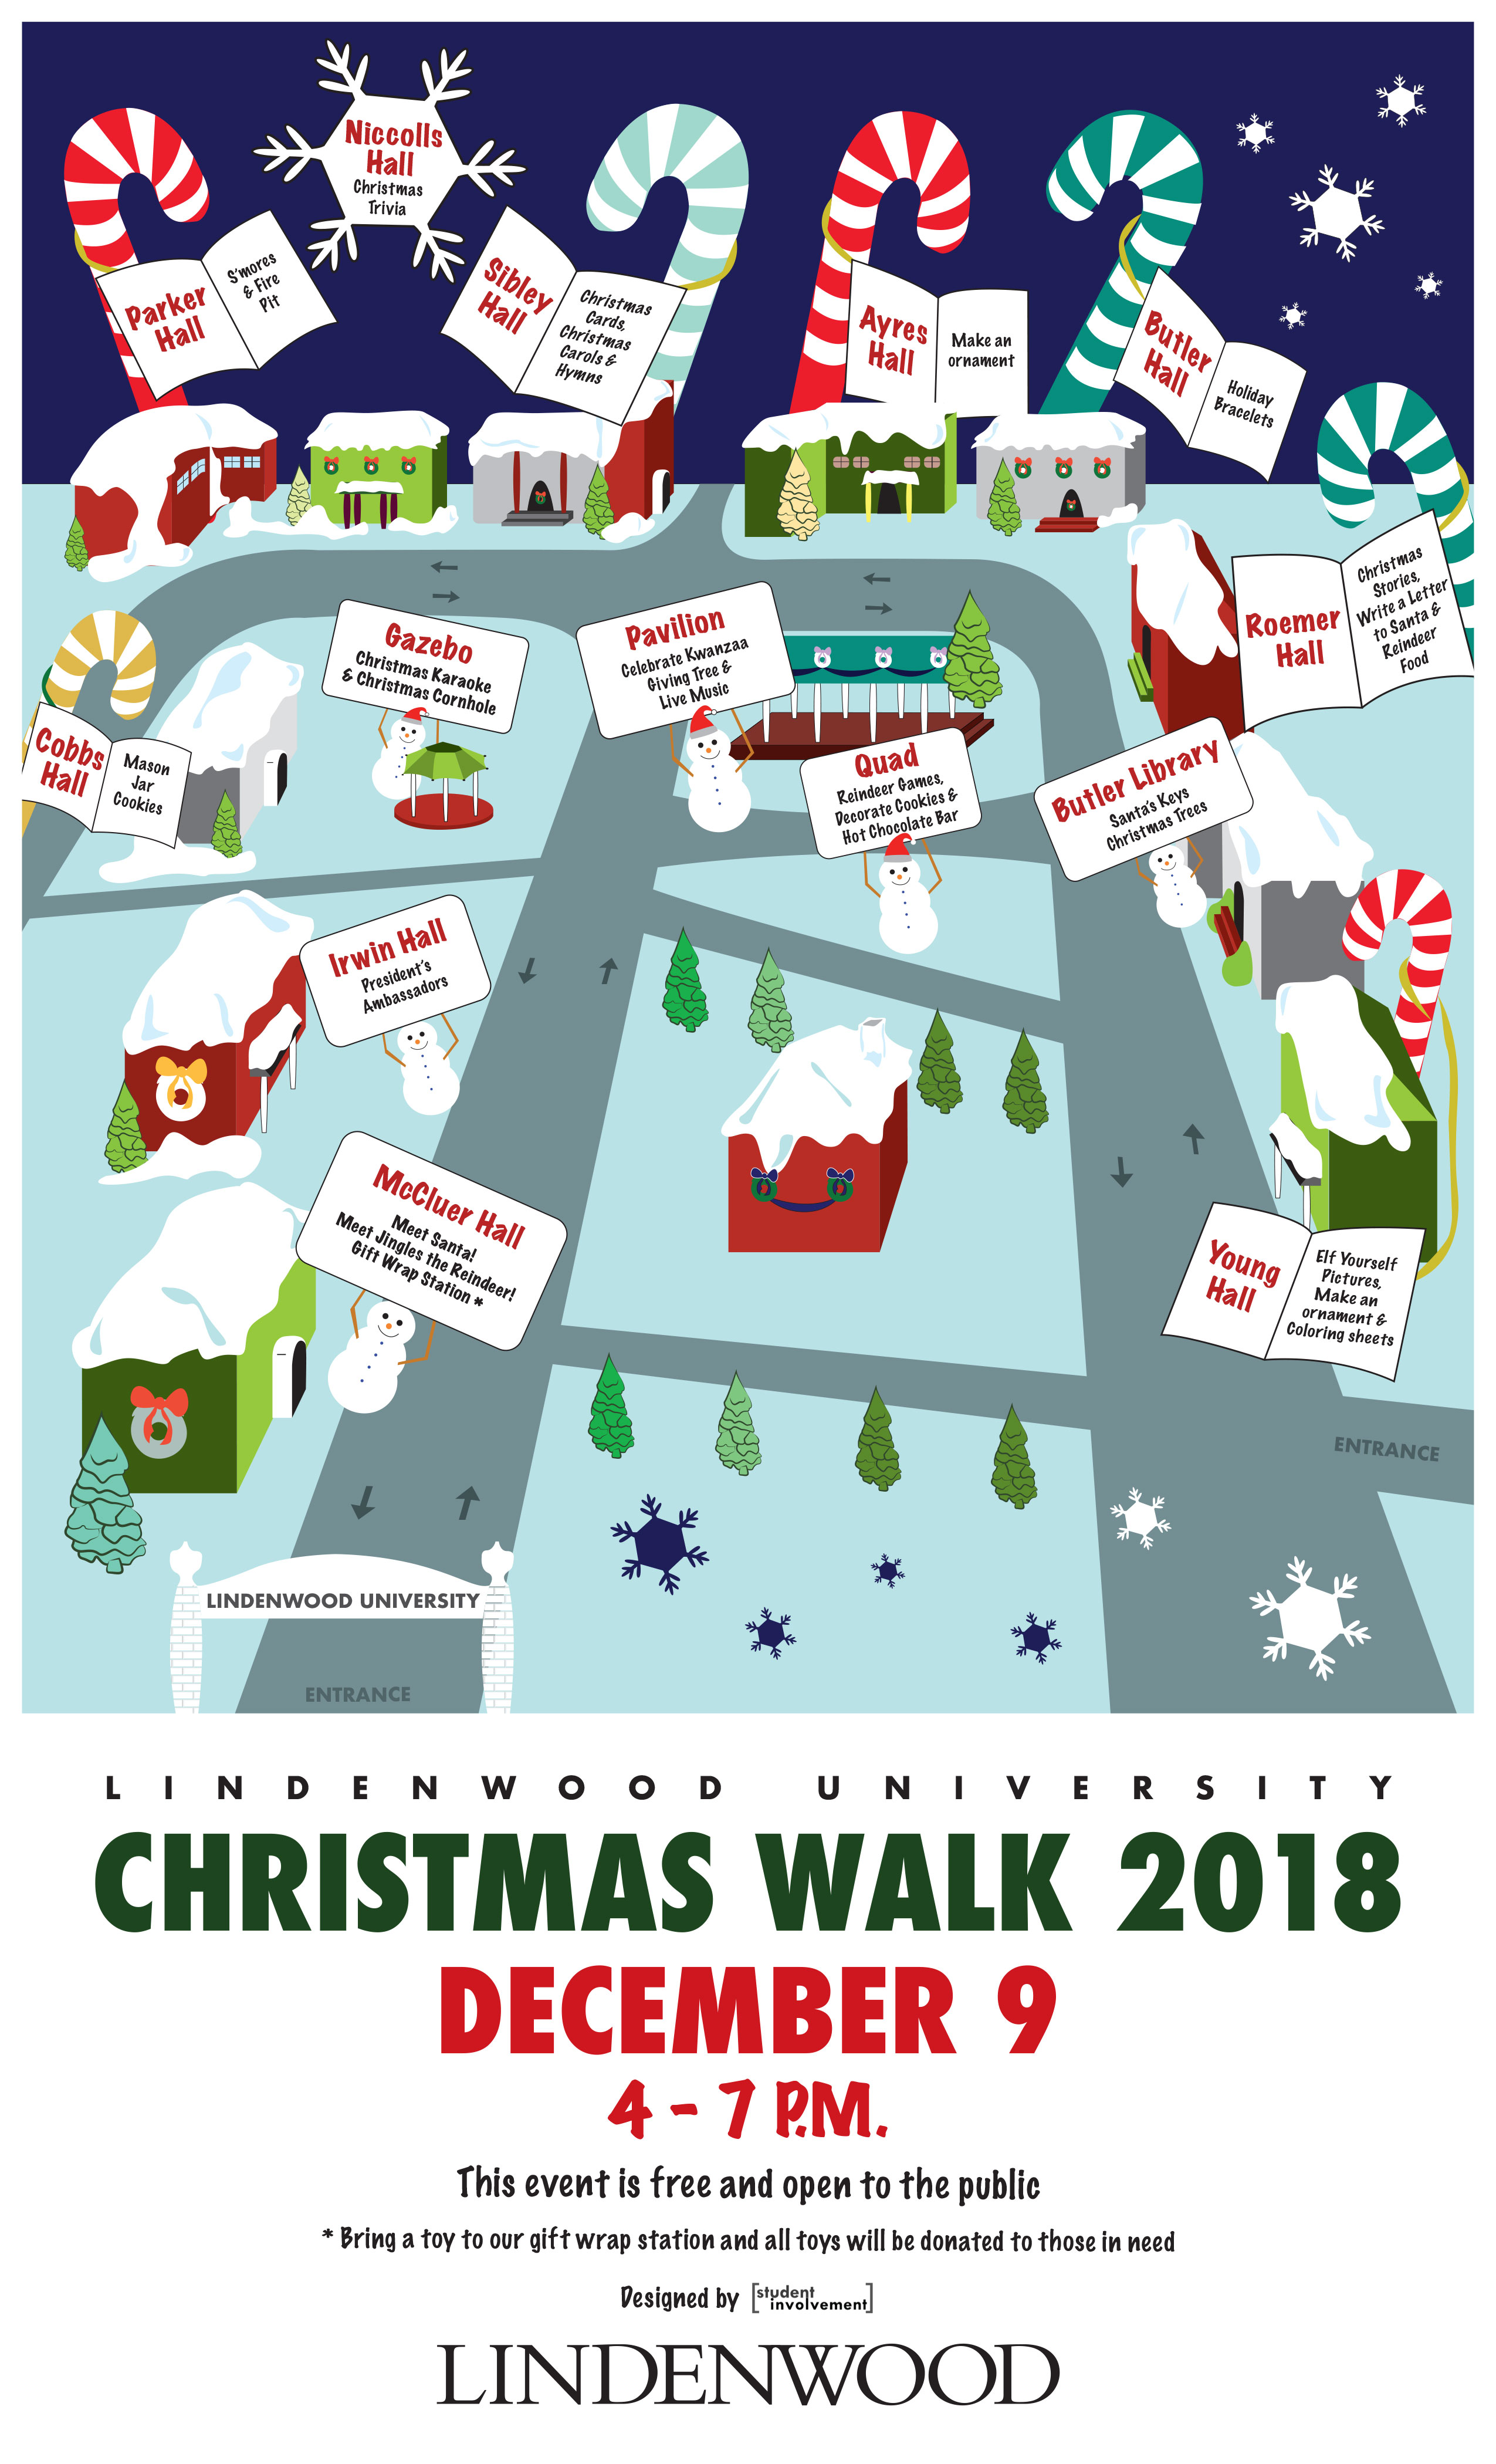 Christmas Walk 2018 Event Flier and Map